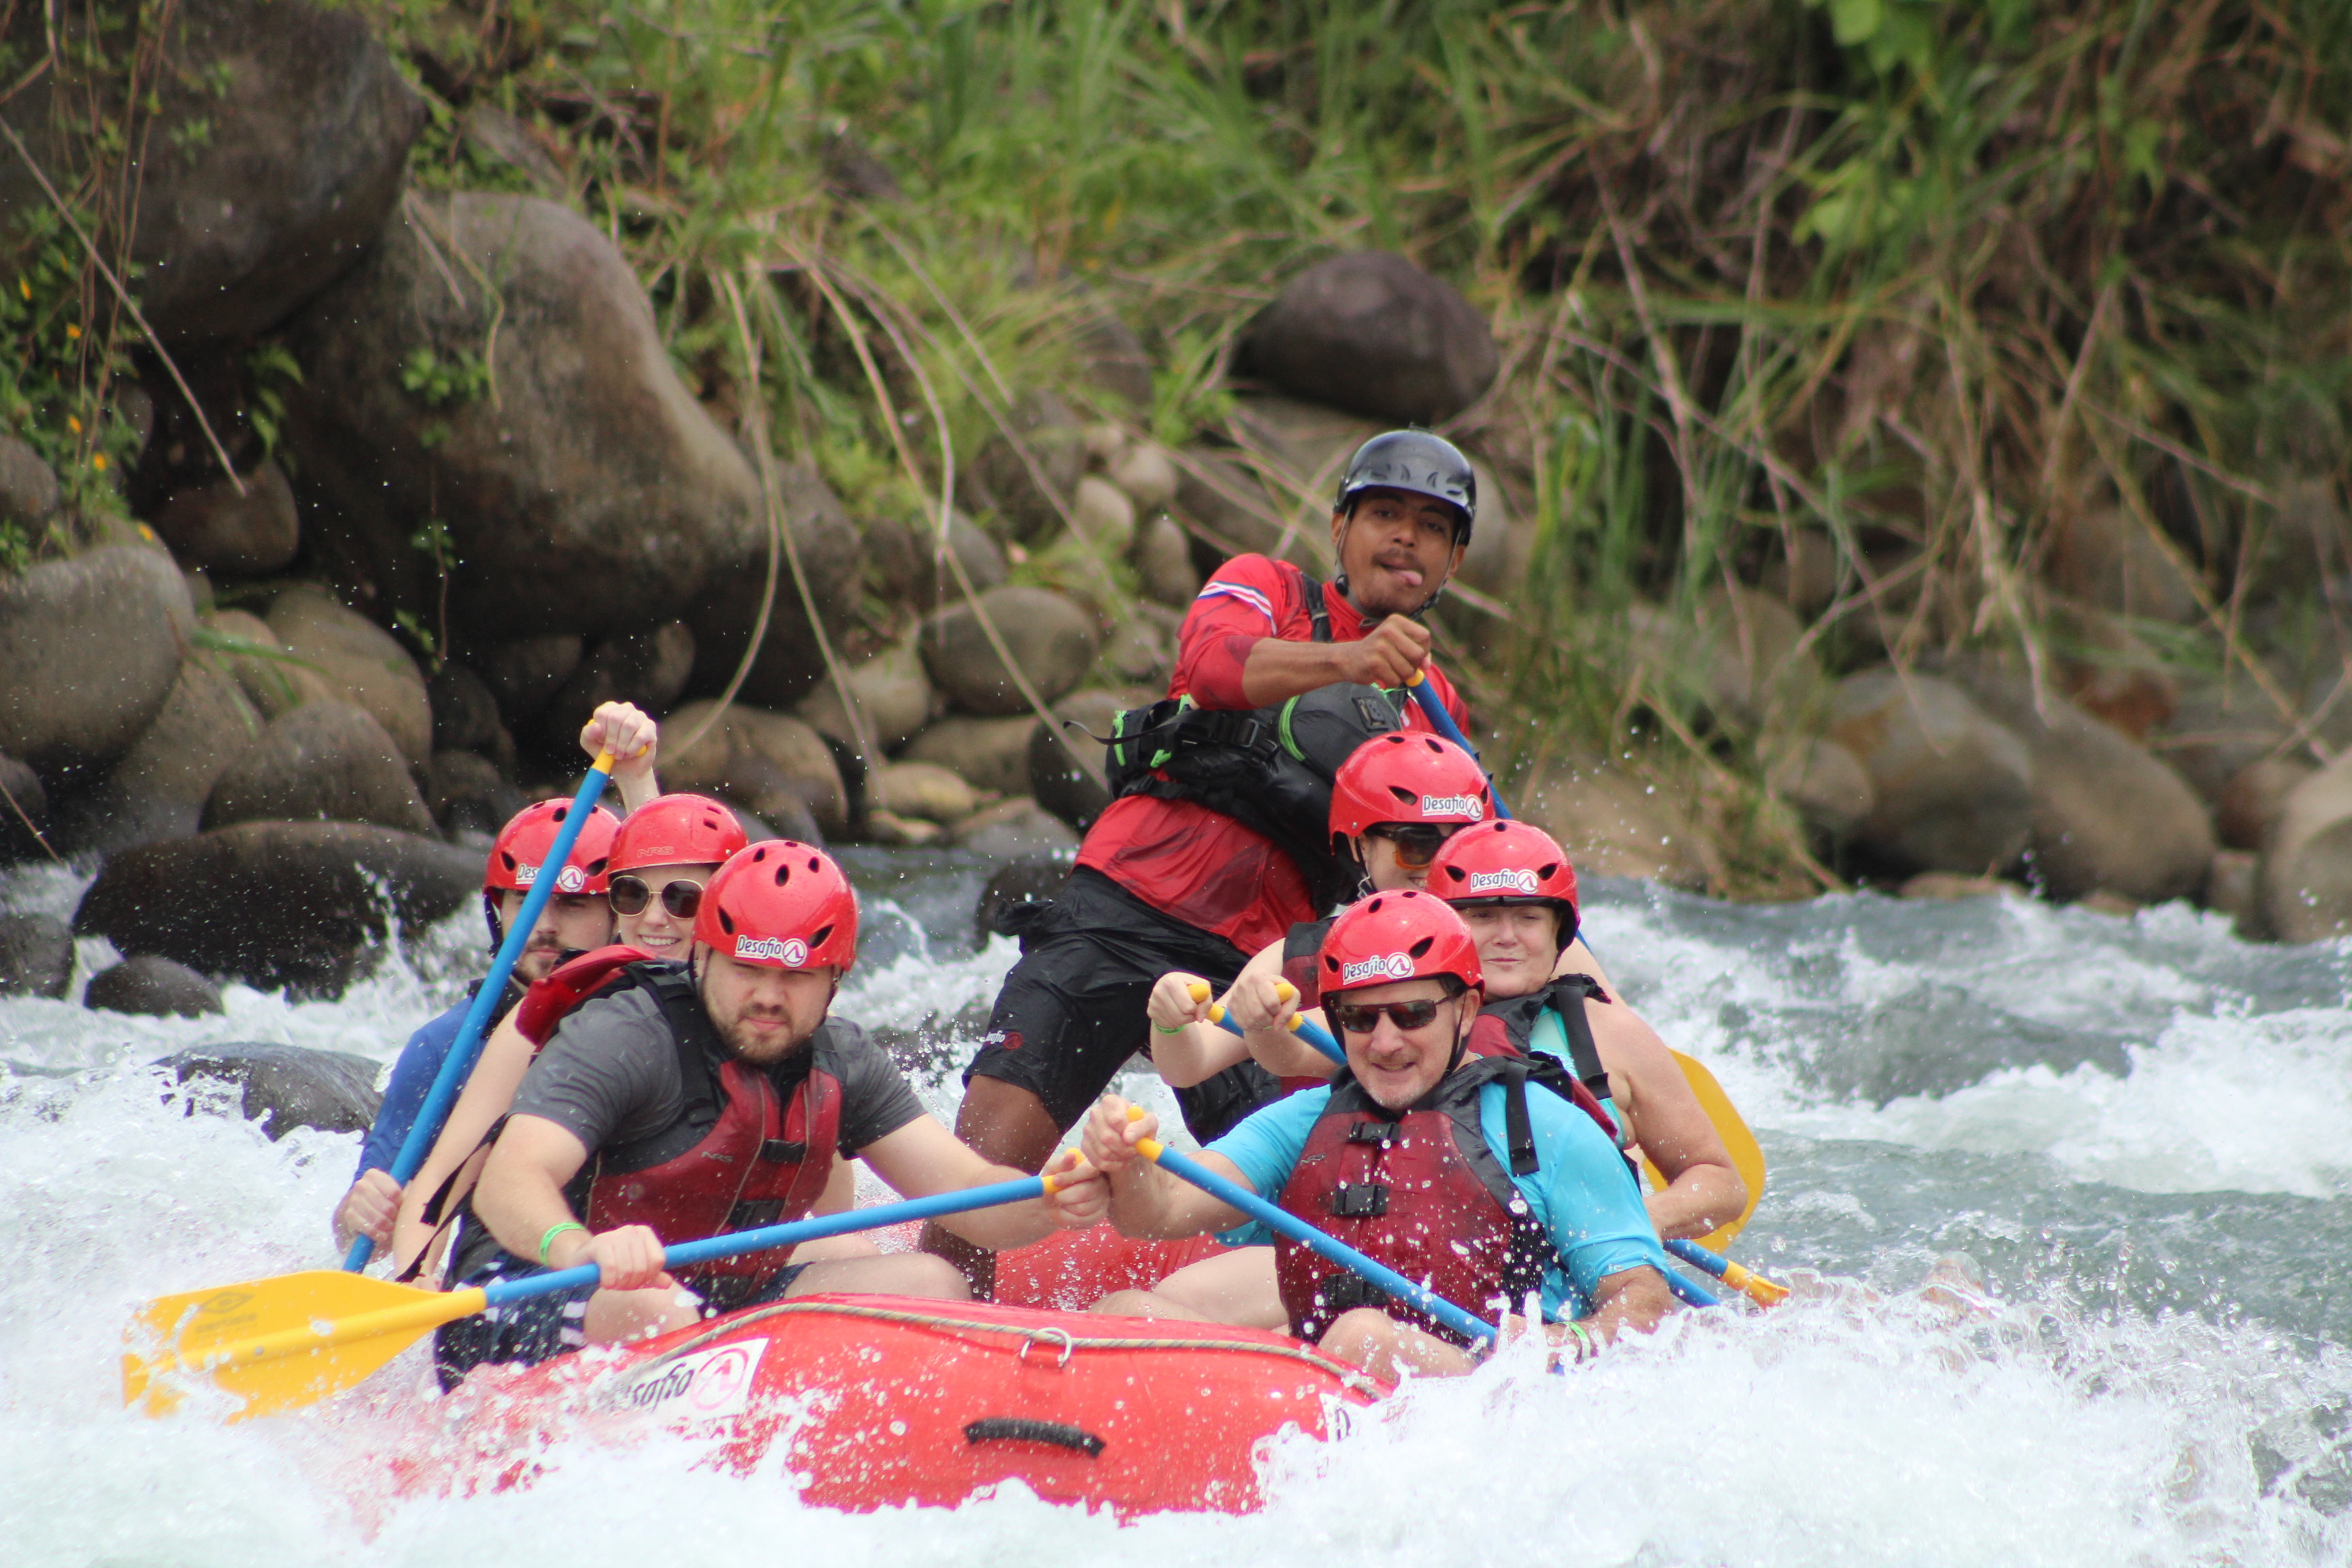 Having fun rafting in Costa Rica.